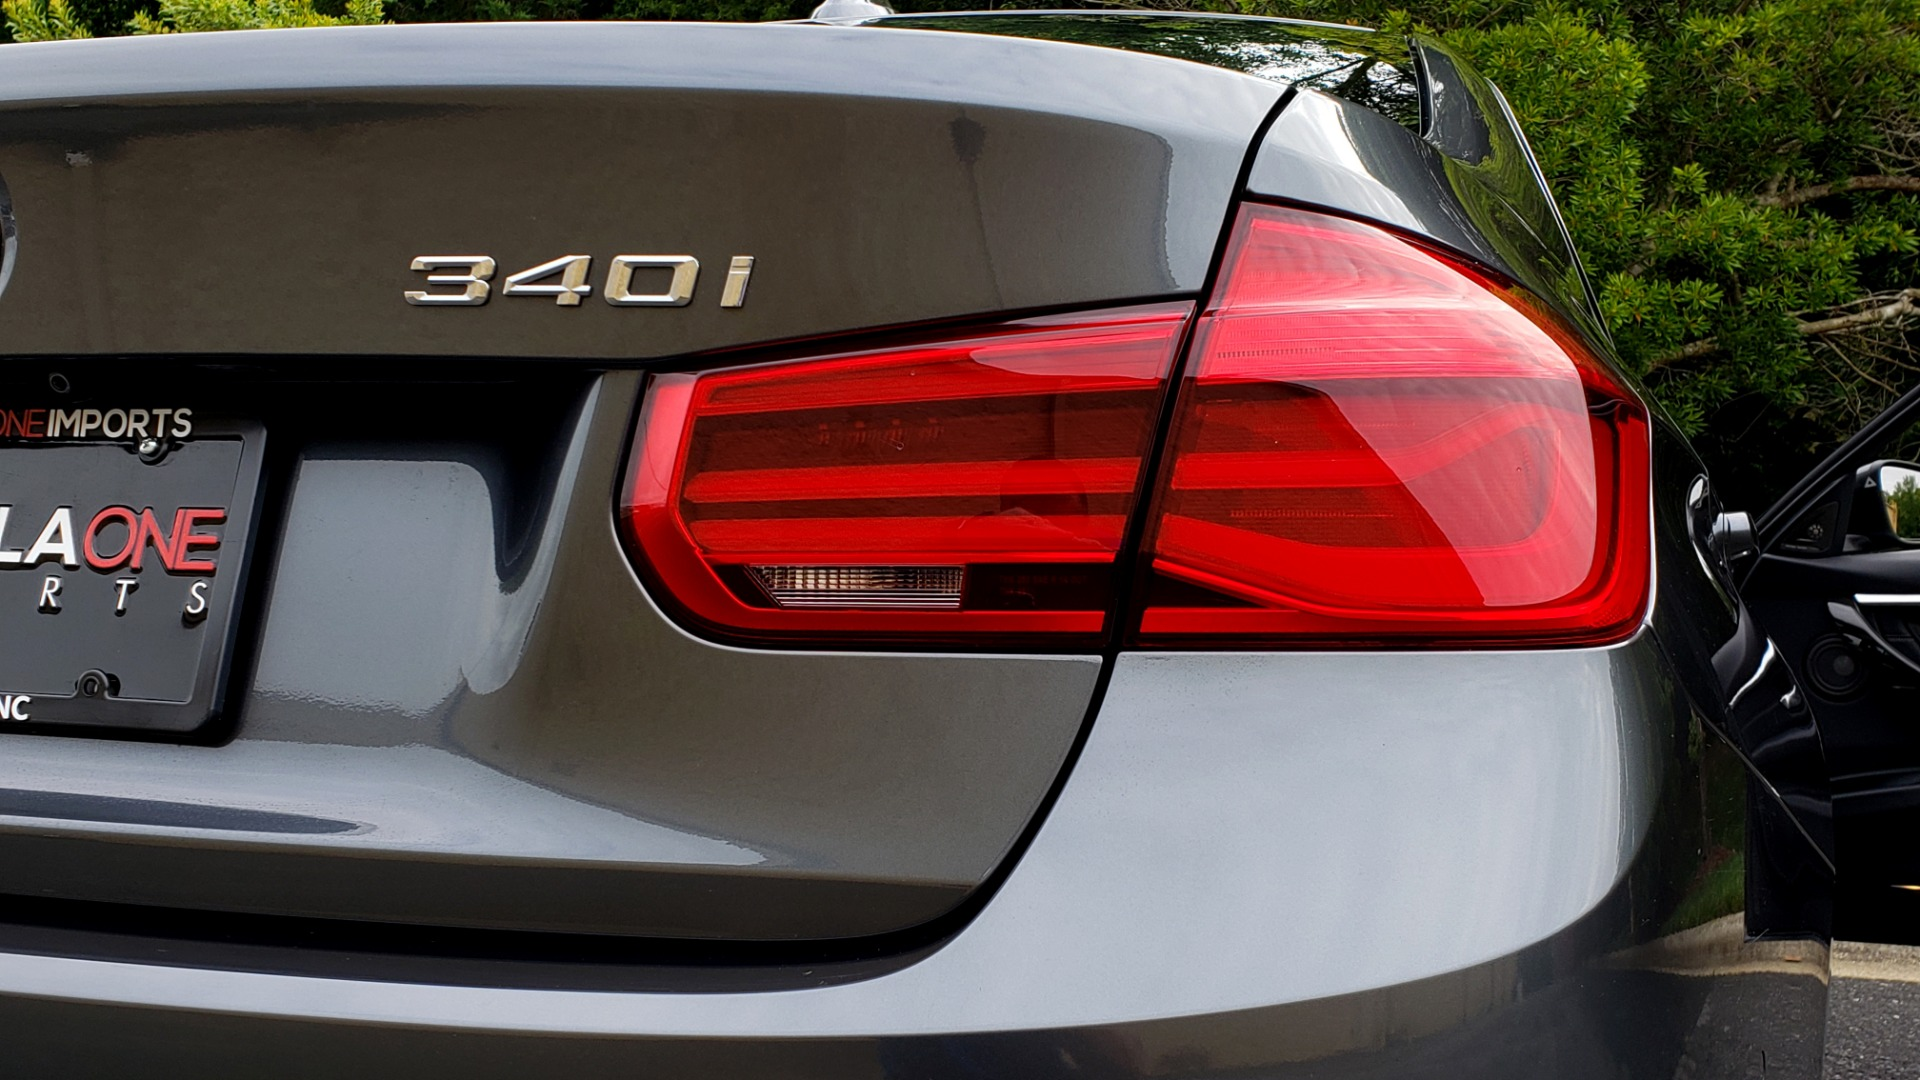 Used 2017 BMW 3 SERIES 340I XDRIVE SPORT / NAV / DRVR ASST PLUS / PARK ASST / CLD WTHR for sale $28,995 at Formula Imports in Charlotte NC 28227 25